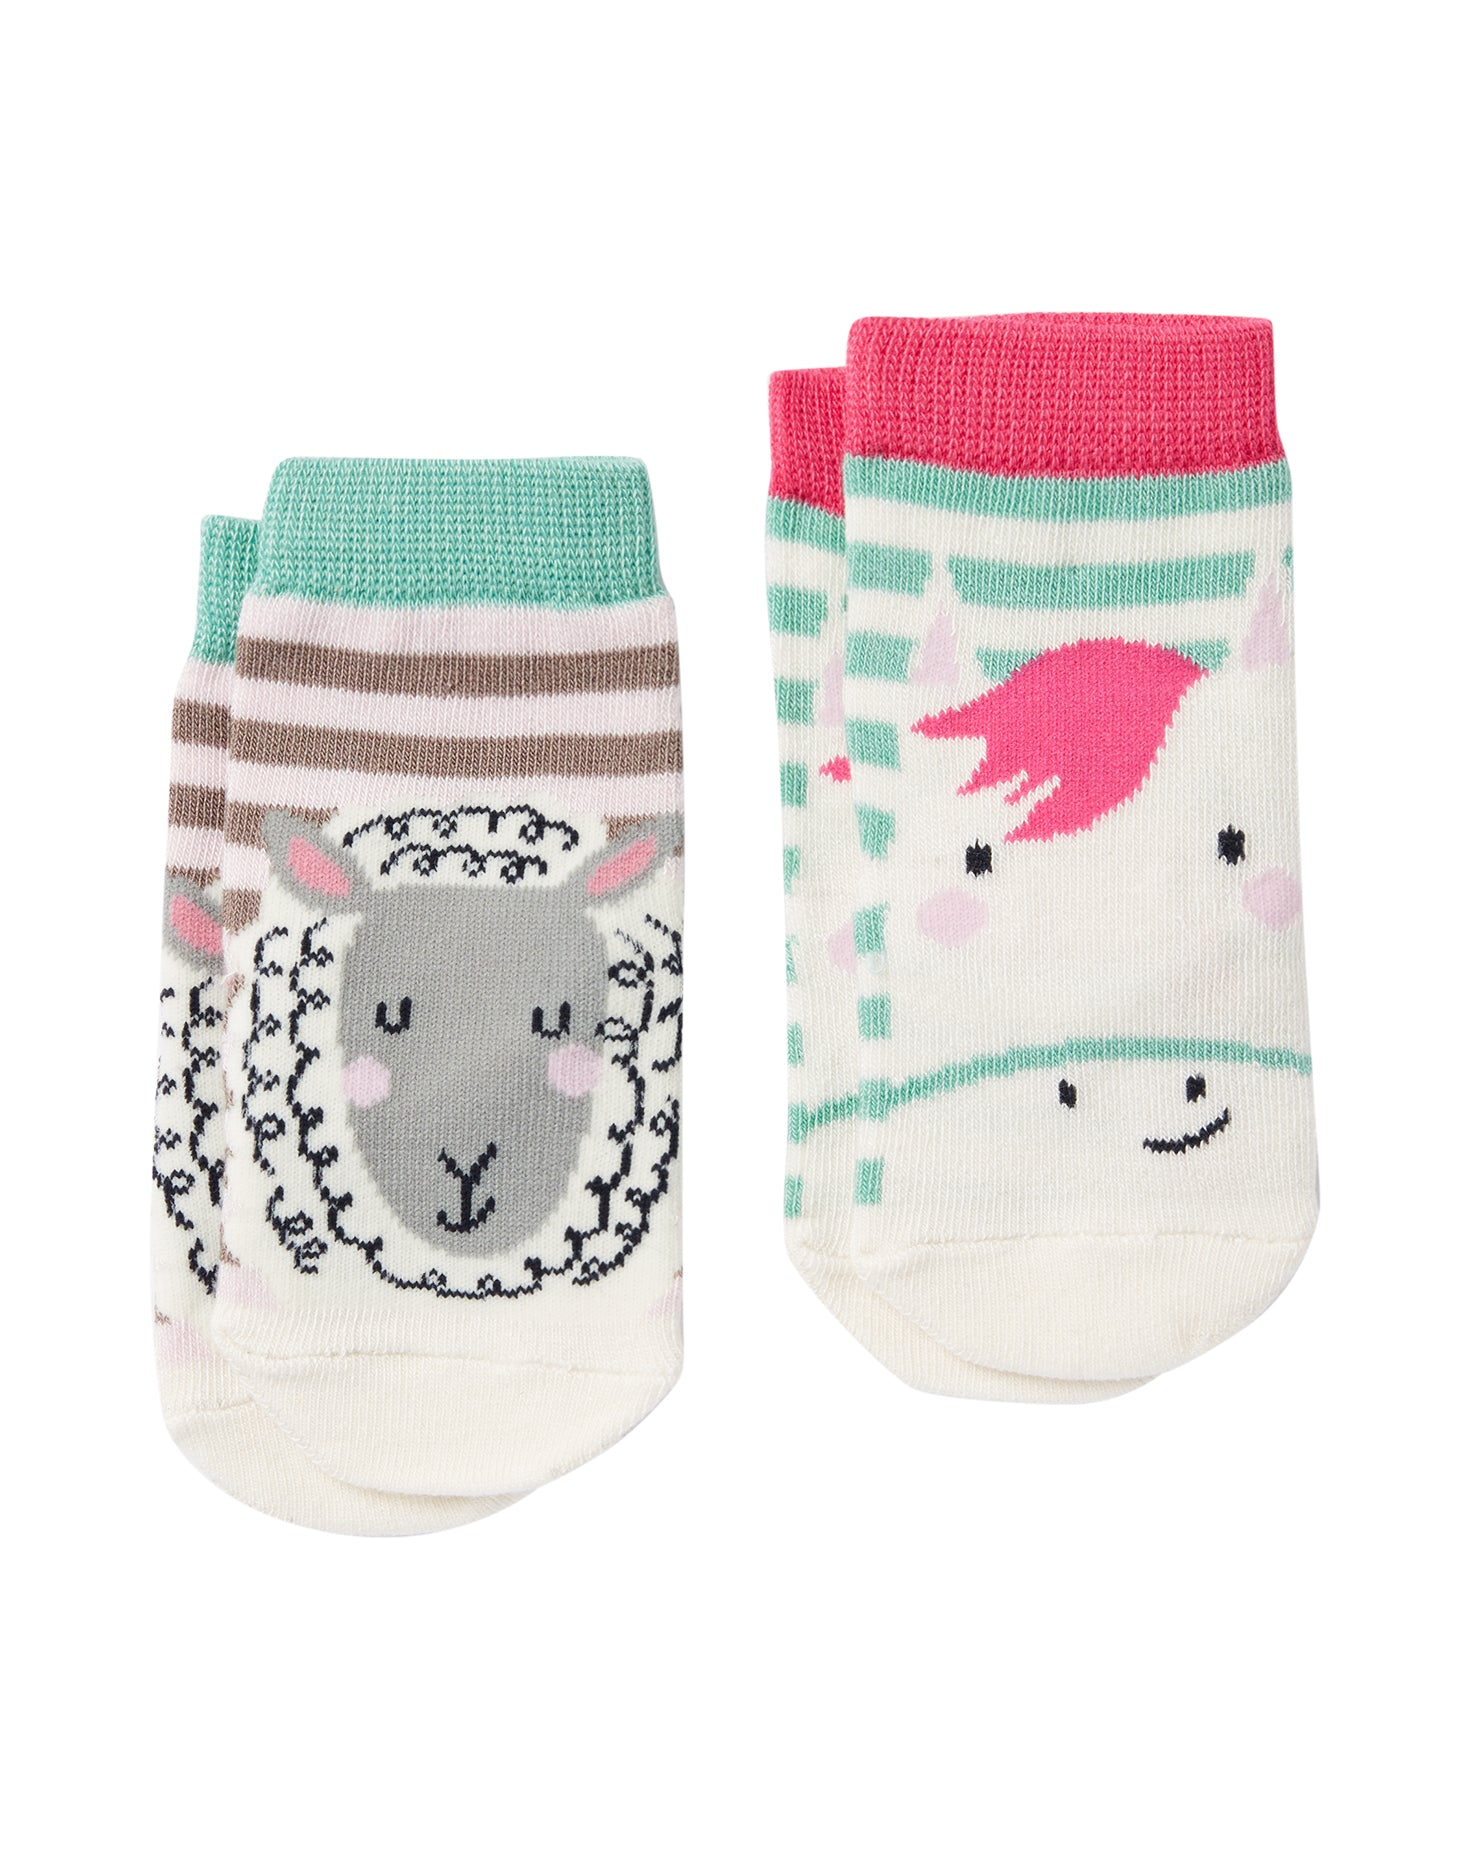 Pink Horse & Sheep Socks (2 Pack)